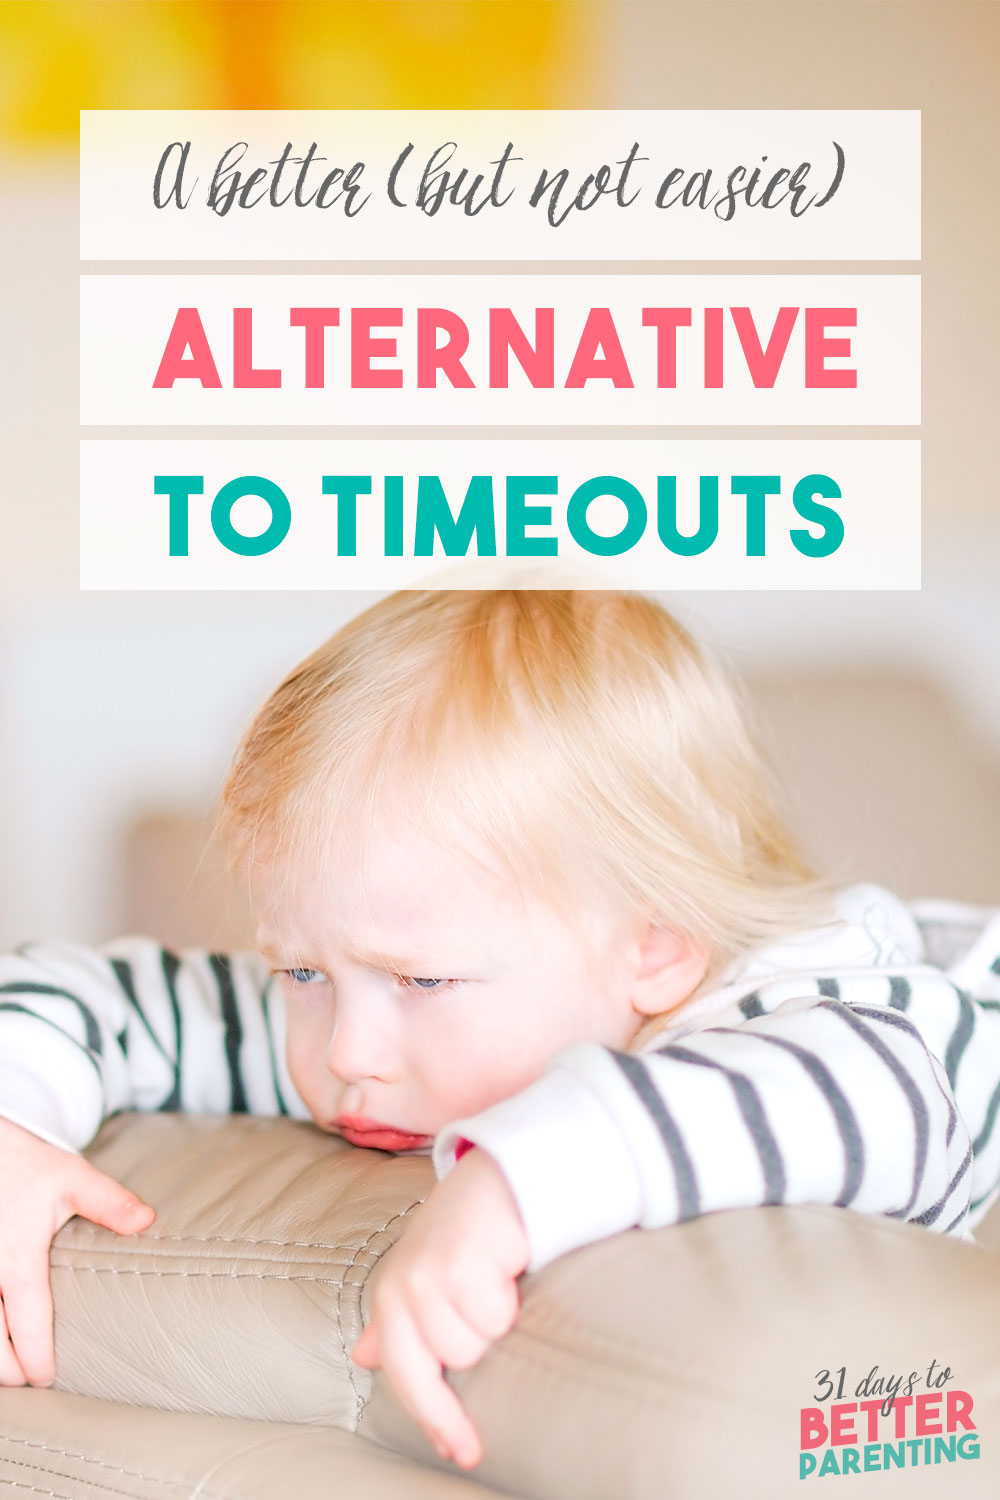 Looking for alternatives to timeout? Putting your child in time out isn't effective and misses out on key learning moments. Try this alternative instead.